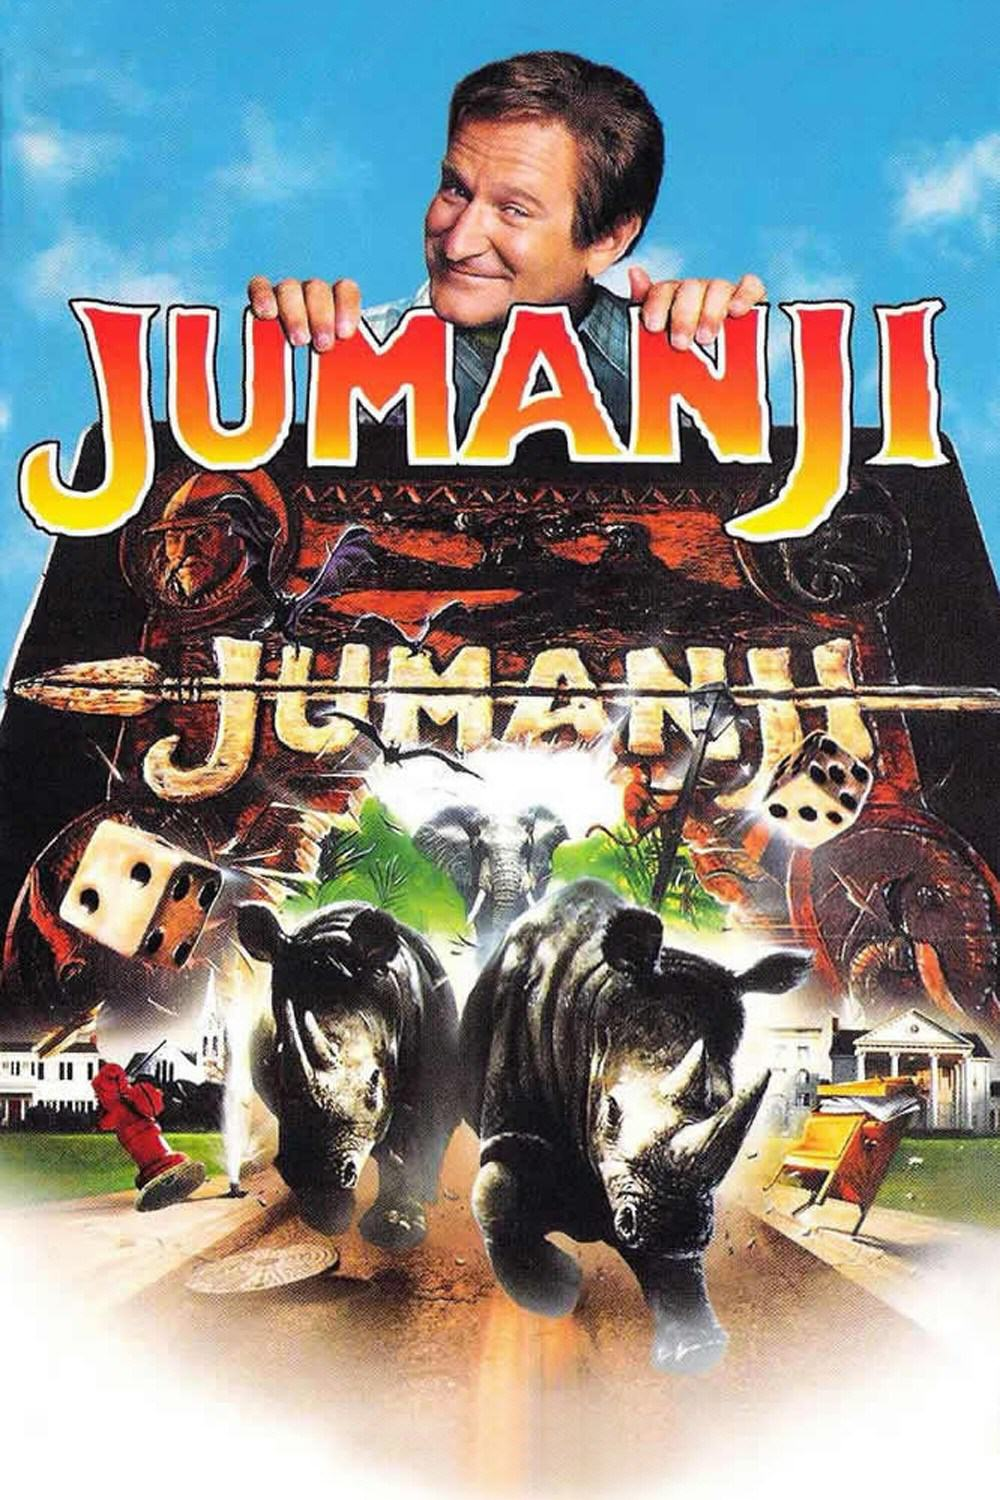 There Is Going To Be An Official Remake Of Jumanji UNILAD x3hx8yWC6EnV